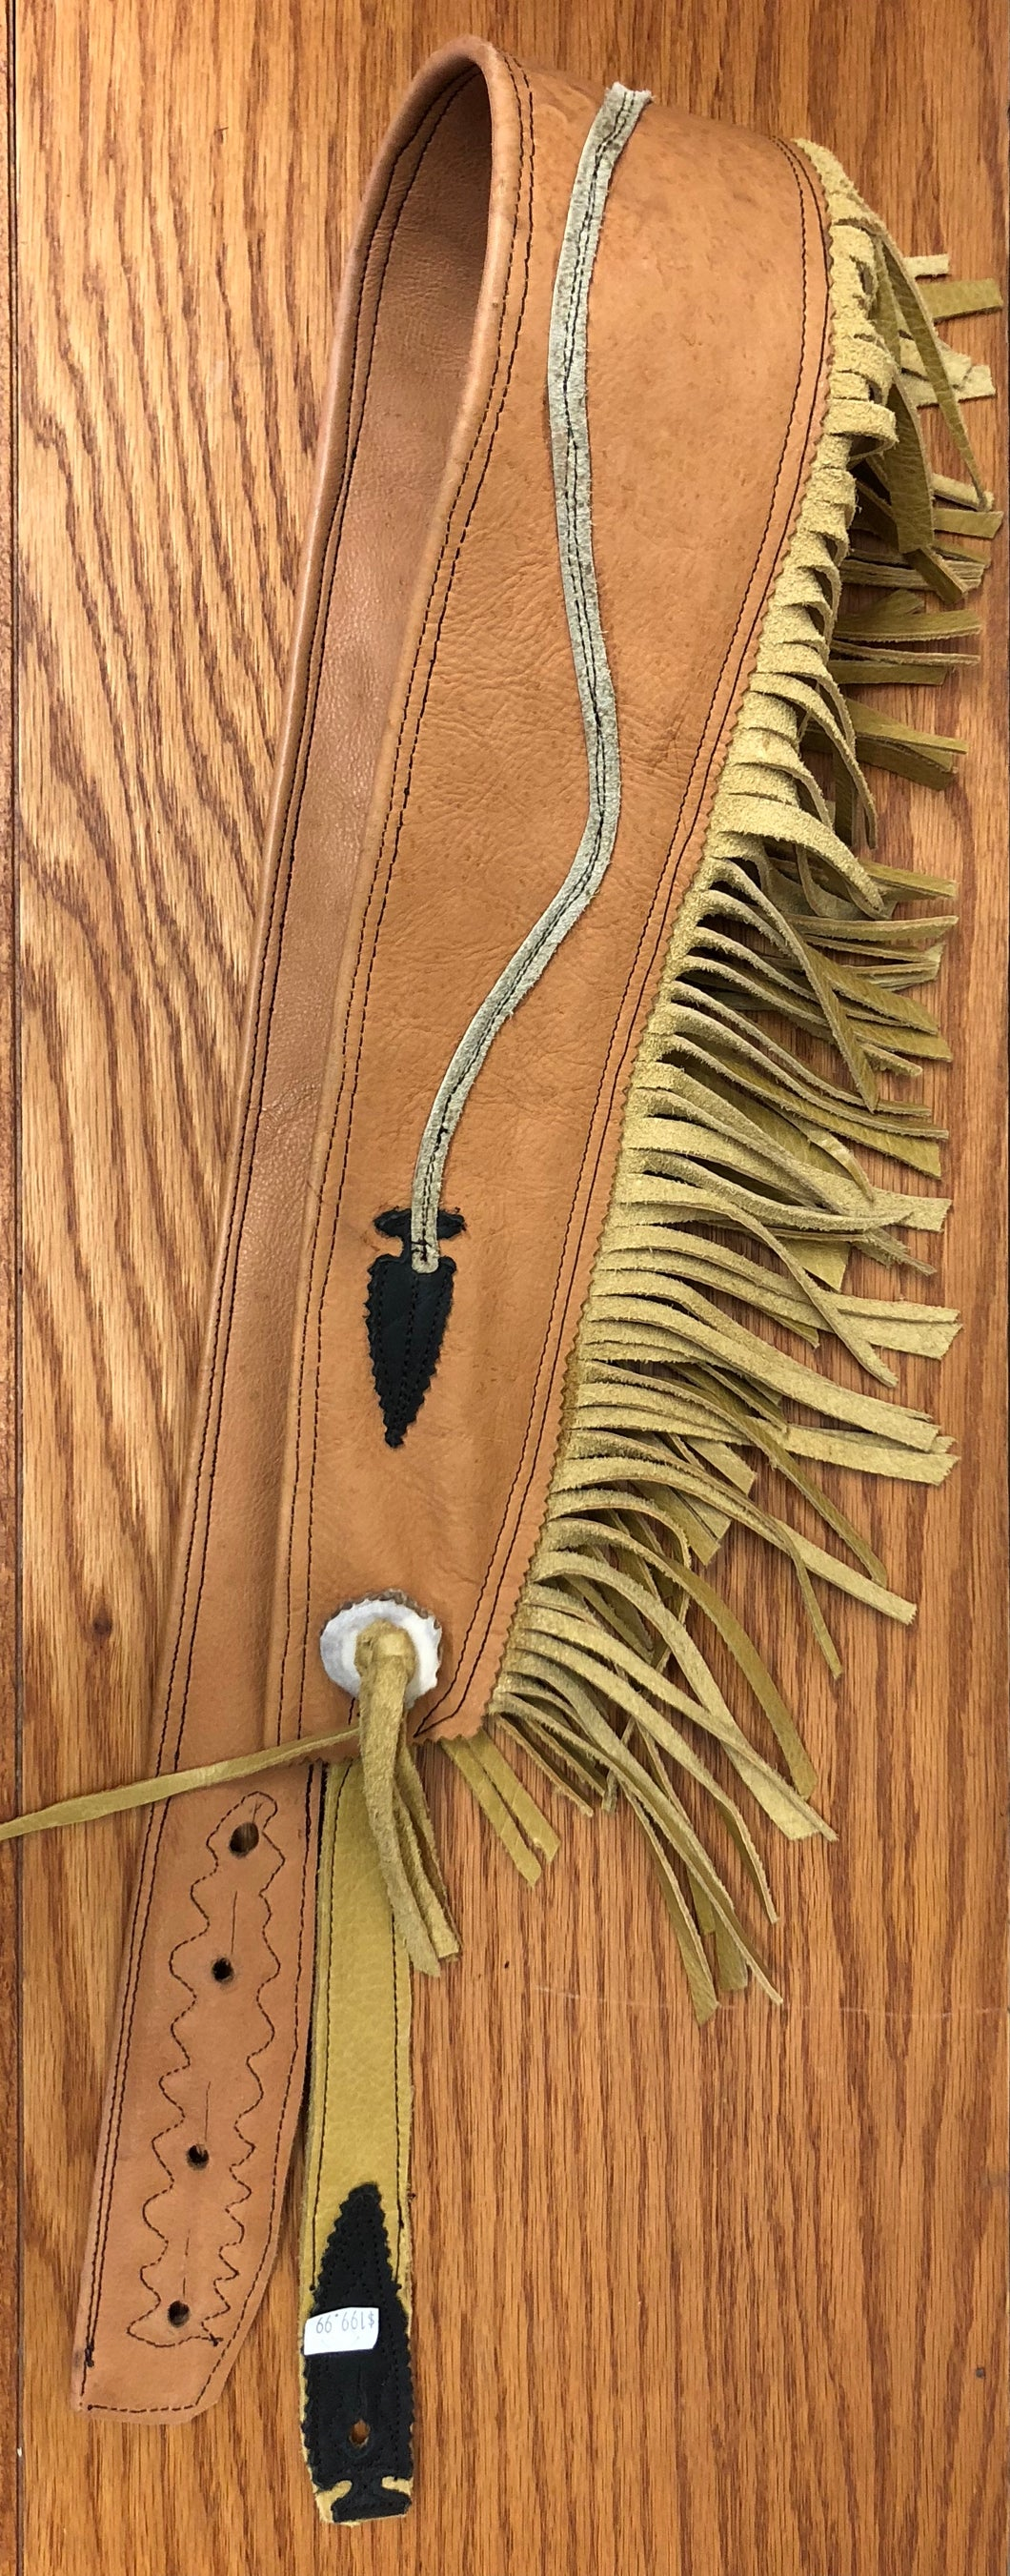 Custom Made Leather Guitar Strap with Arrow Design and Suede Fringe